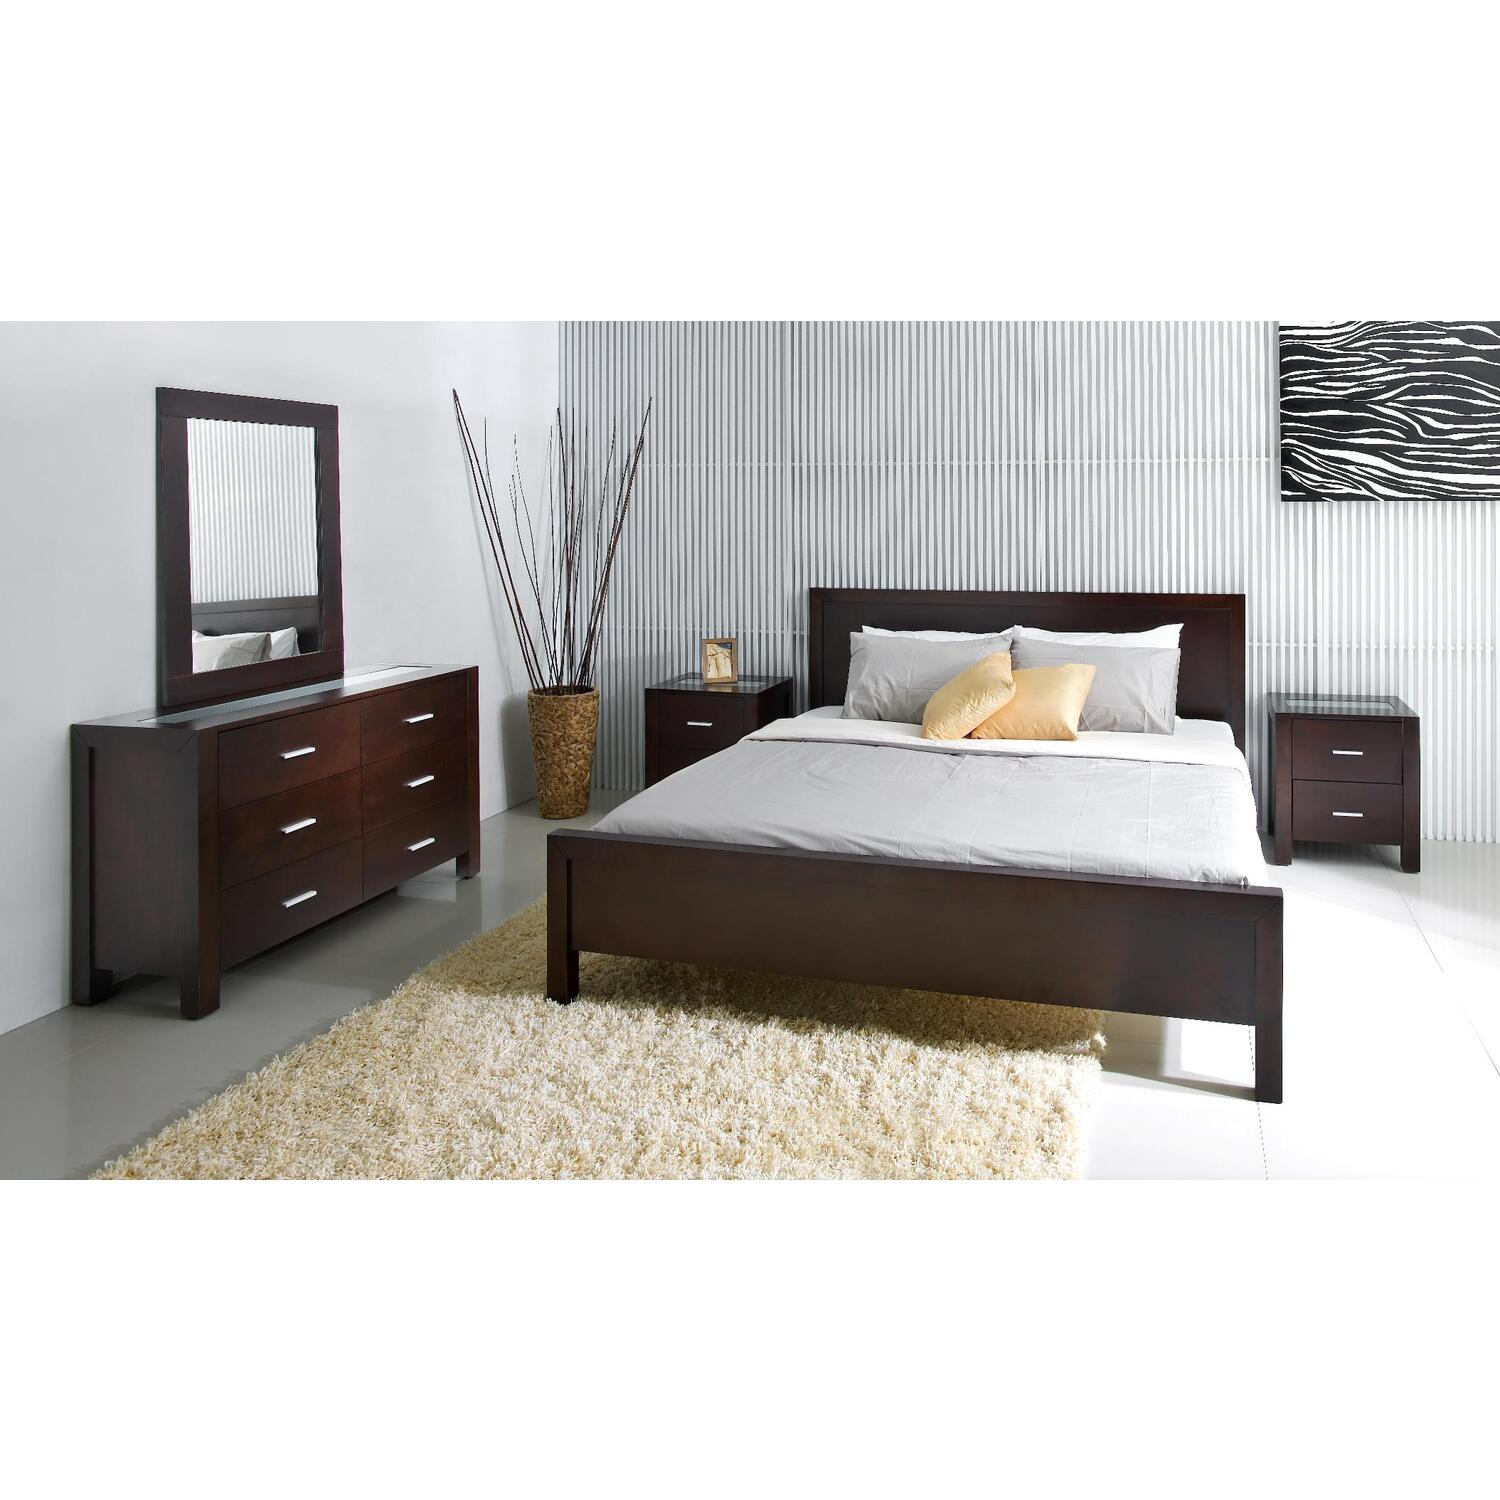 5PC CalKing Bedroom Set  OJCommerce